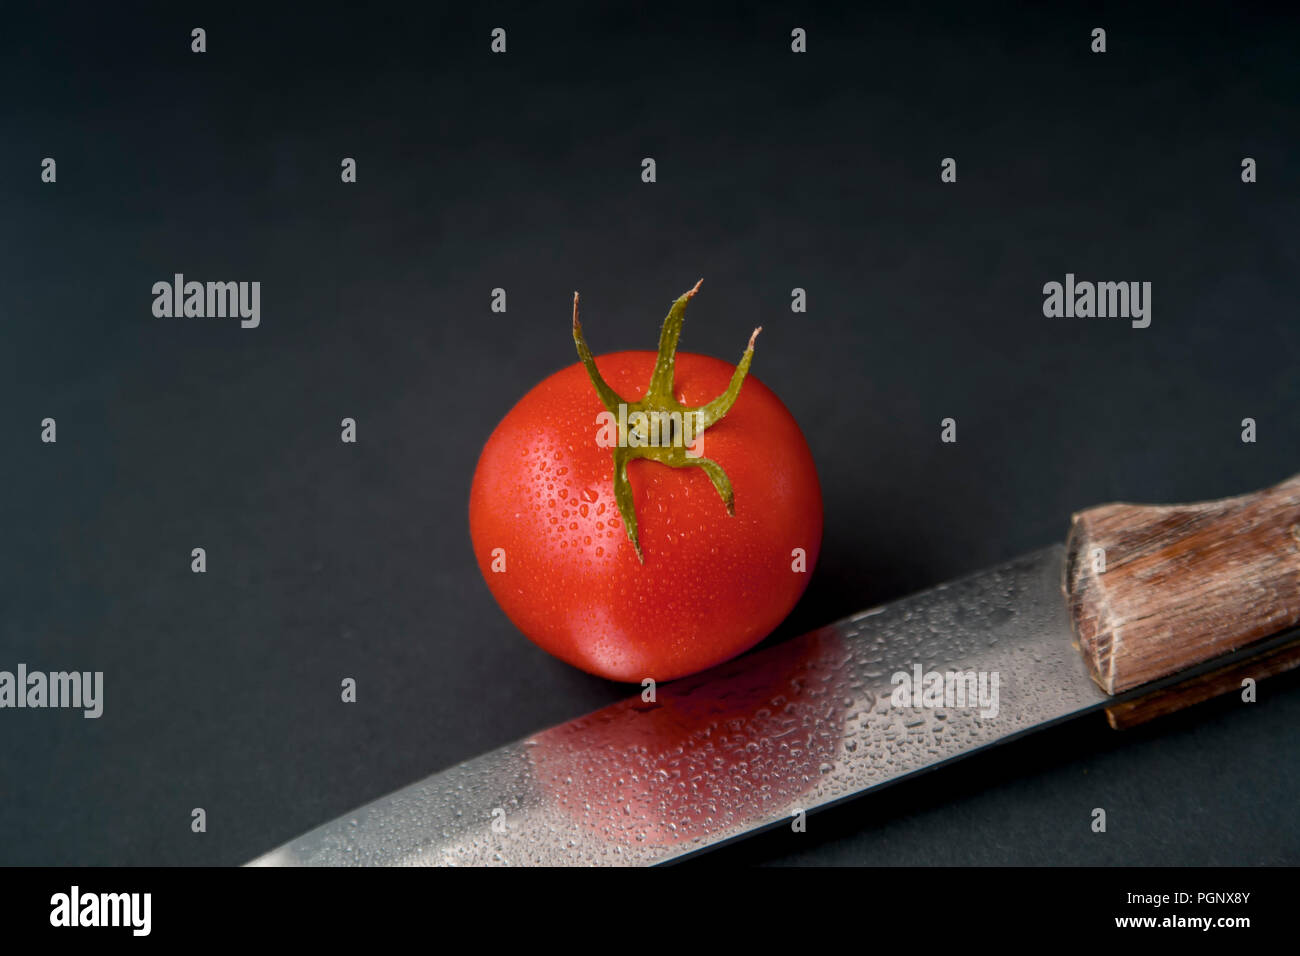 Single tomato isolated on black with stem, leaf. Top view. Knife with water droplets in front of the tomato showing reflection. Tomato cultivars vary  Stock Photo